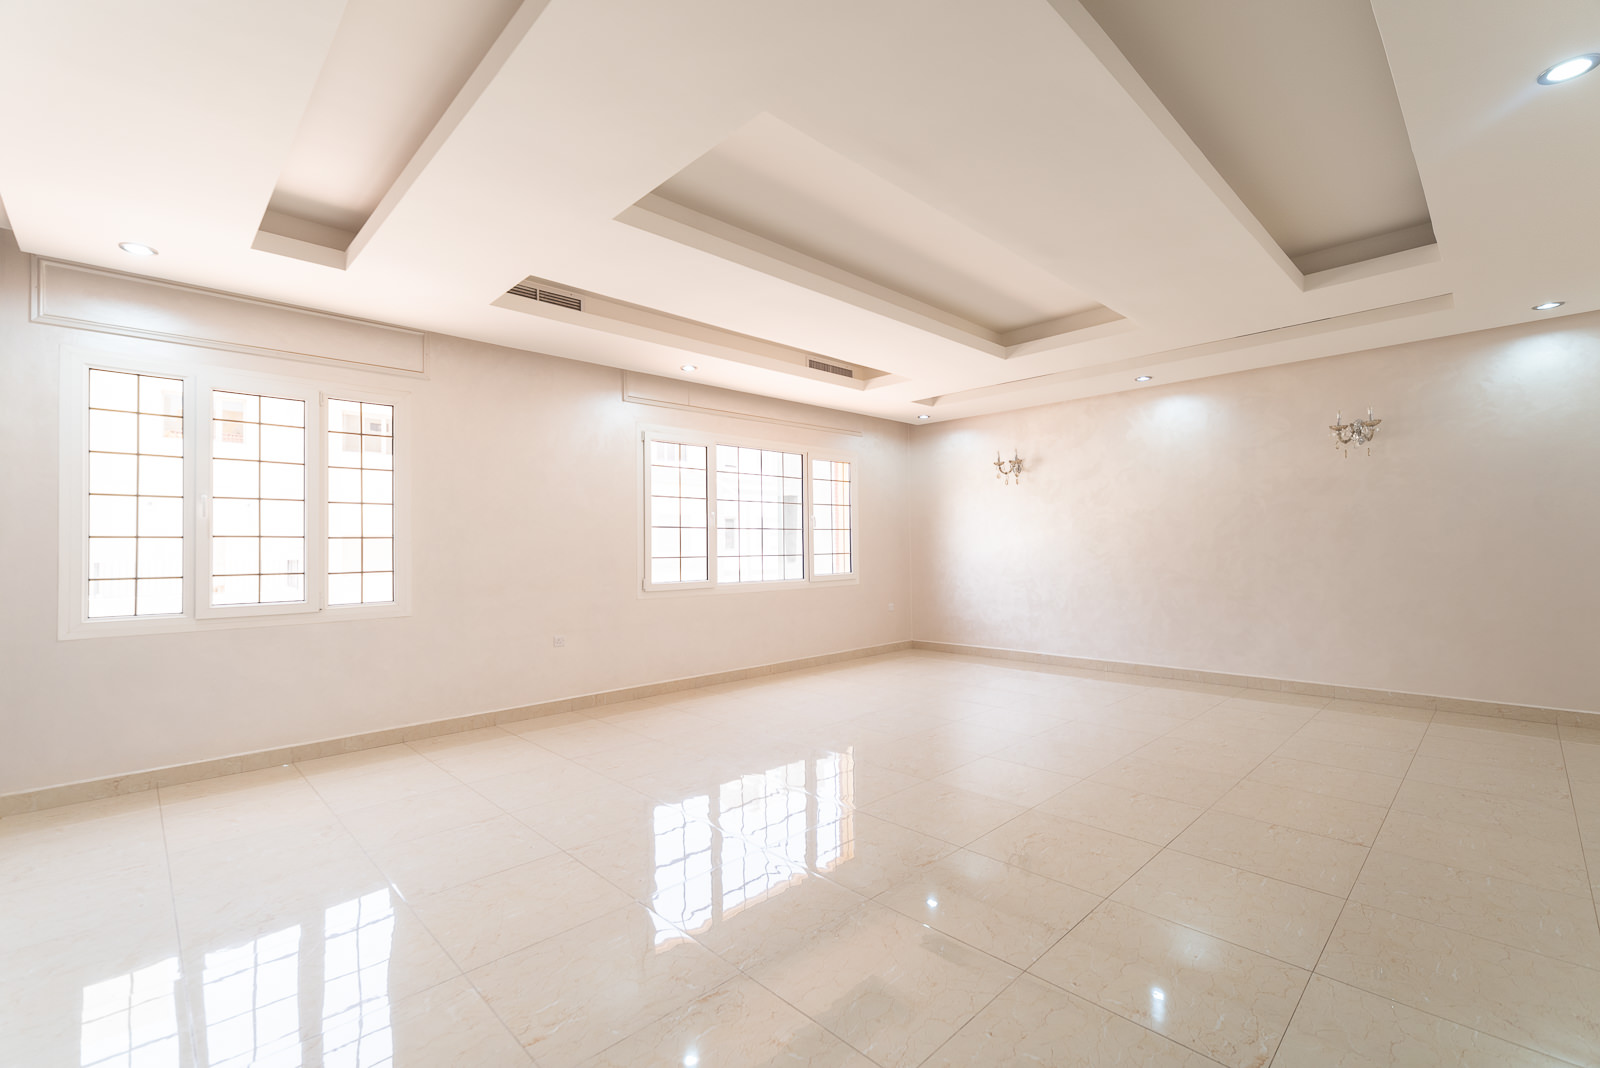 Abu Faitra – very spacious, unfurnished, four bedroom floor